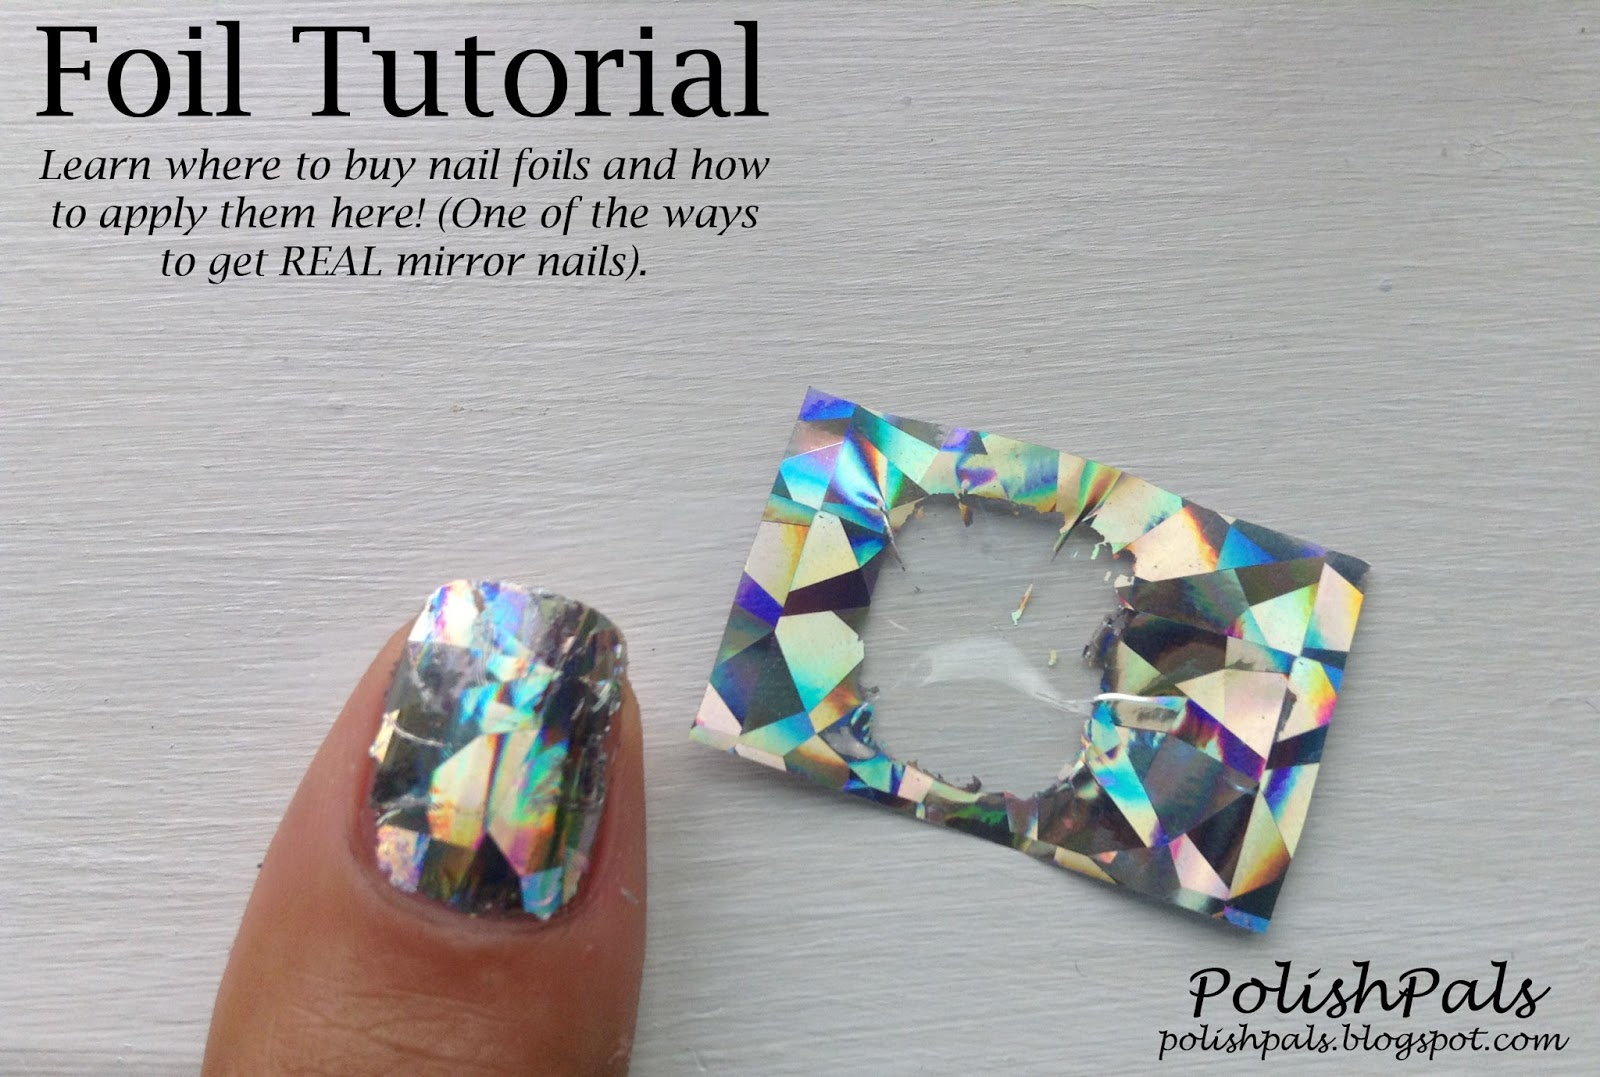 Polish Pals: Nail Foil Tutorial